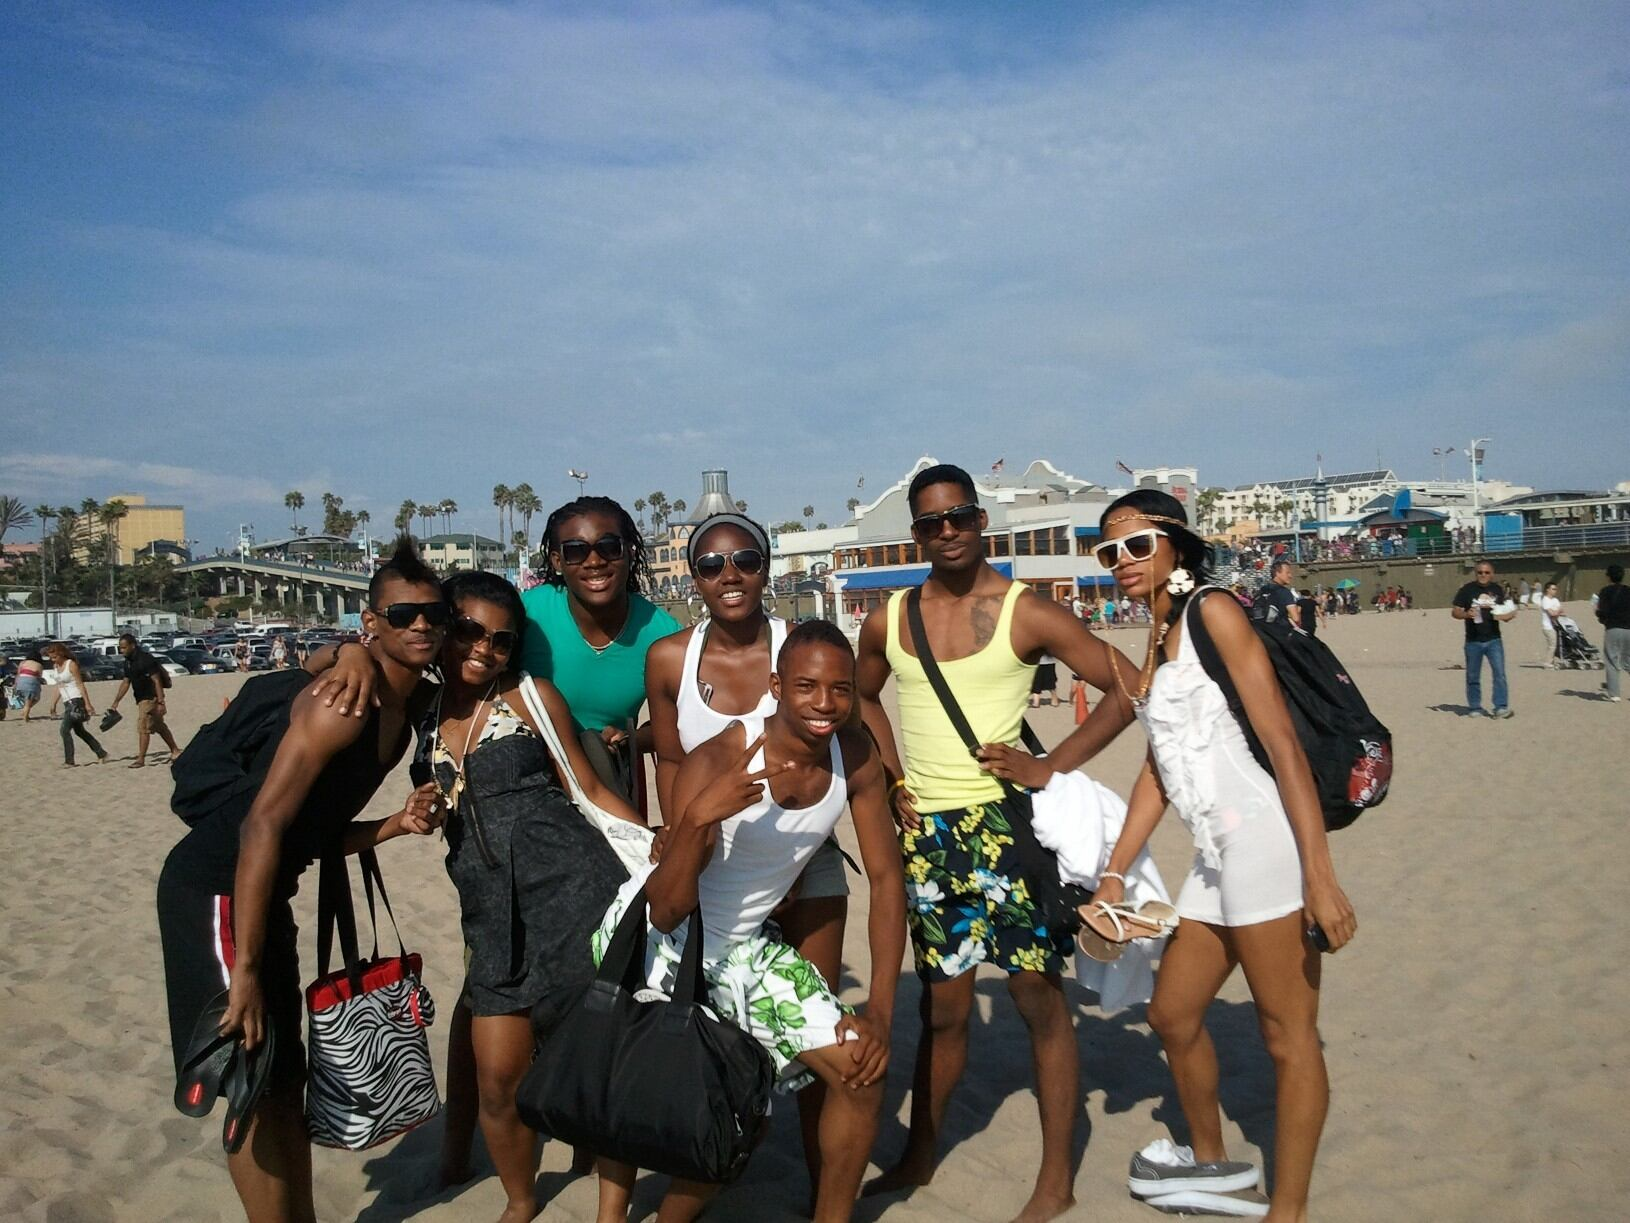 At Santa Monica Beach